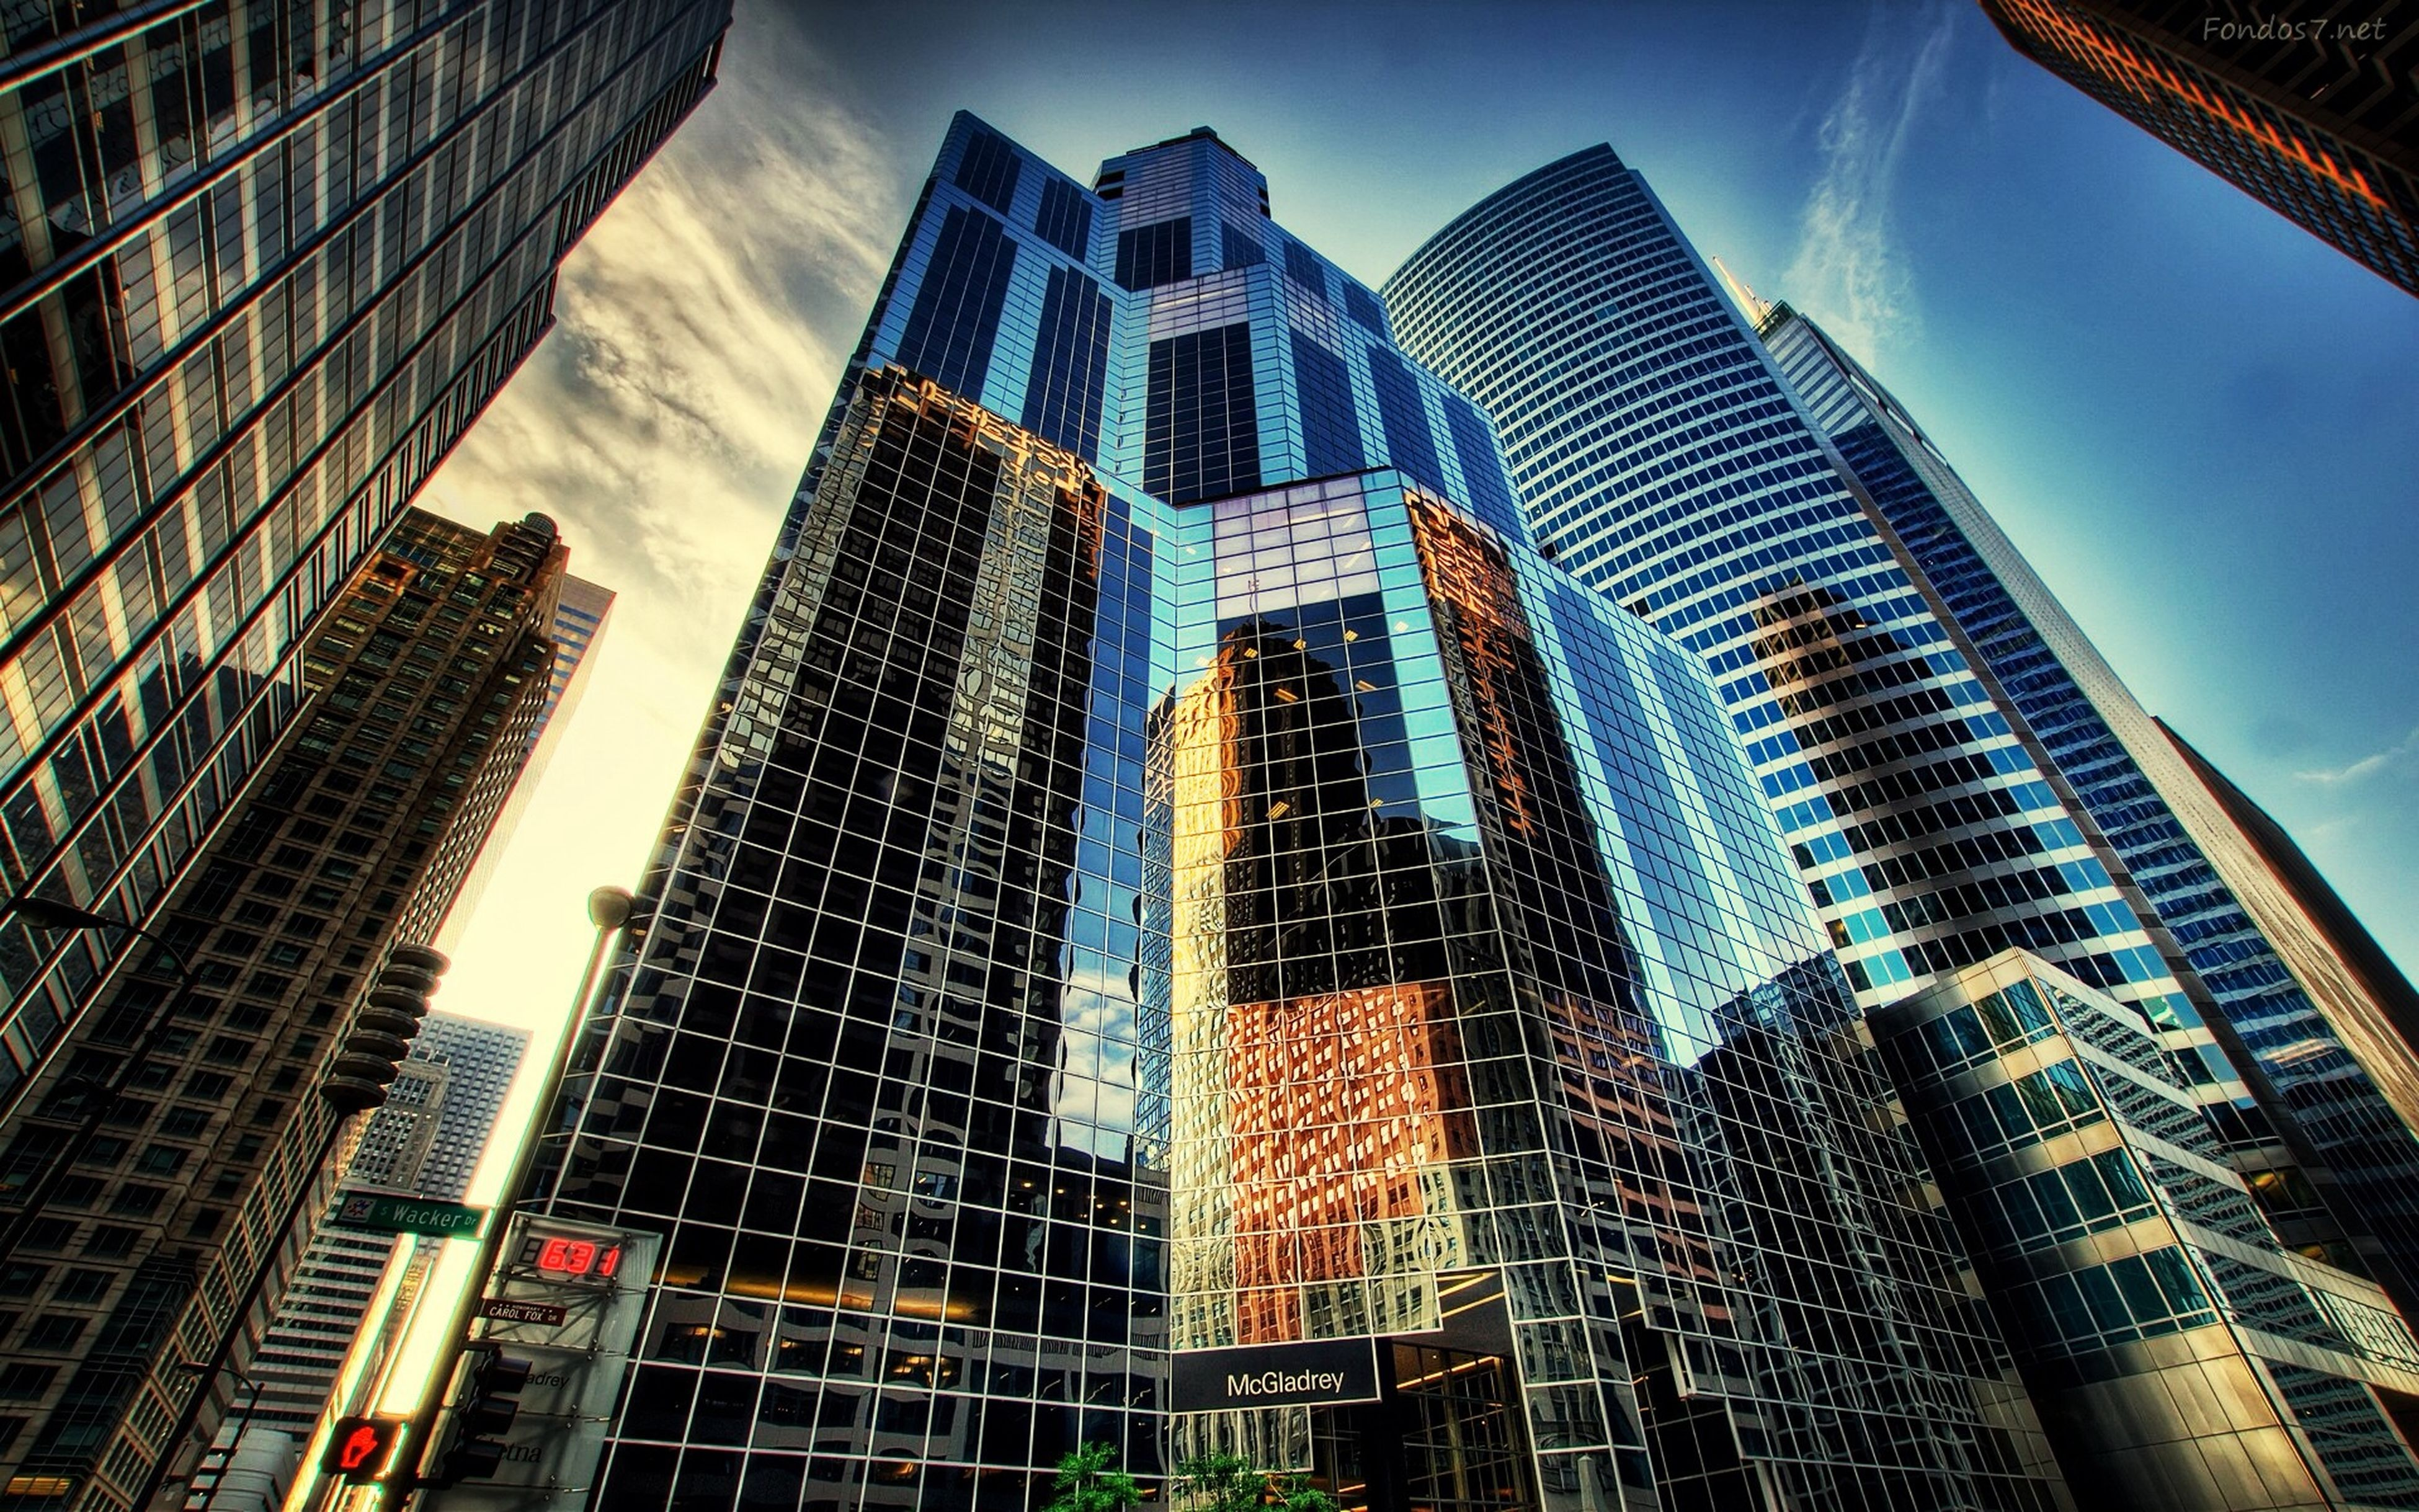 building exterior, architecture, city, built structure, skyscraper, modern, office building, tall - high, low angle view, tower, sky, reflection, building, glass - material, financial district, city life, tall, cityscape, day, residential building